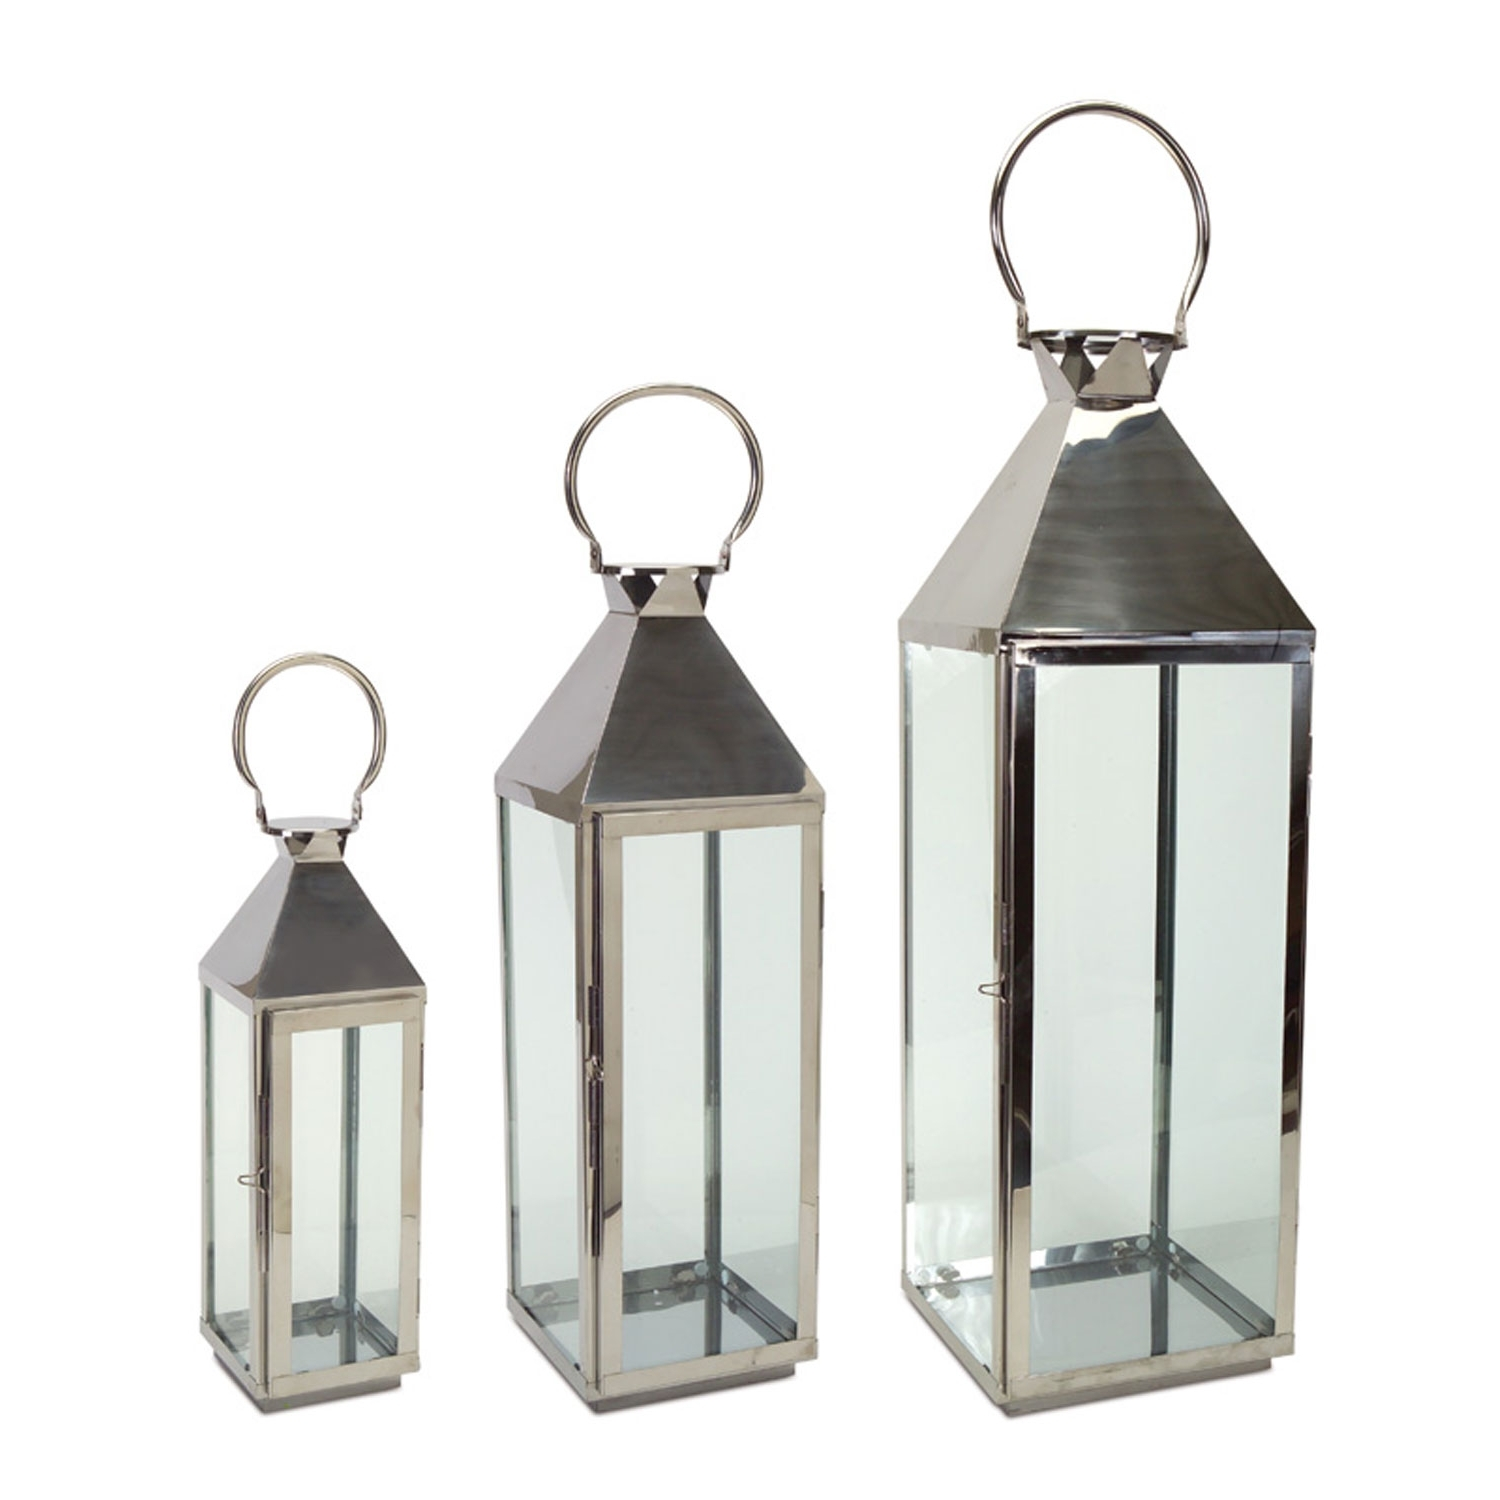 2018 Outdoor Hanging Lanterns Candles Throughout Candle Lanterns, Outdoor Hanging Lanterns, Decorative On Sale (Gallery 16 of 20)